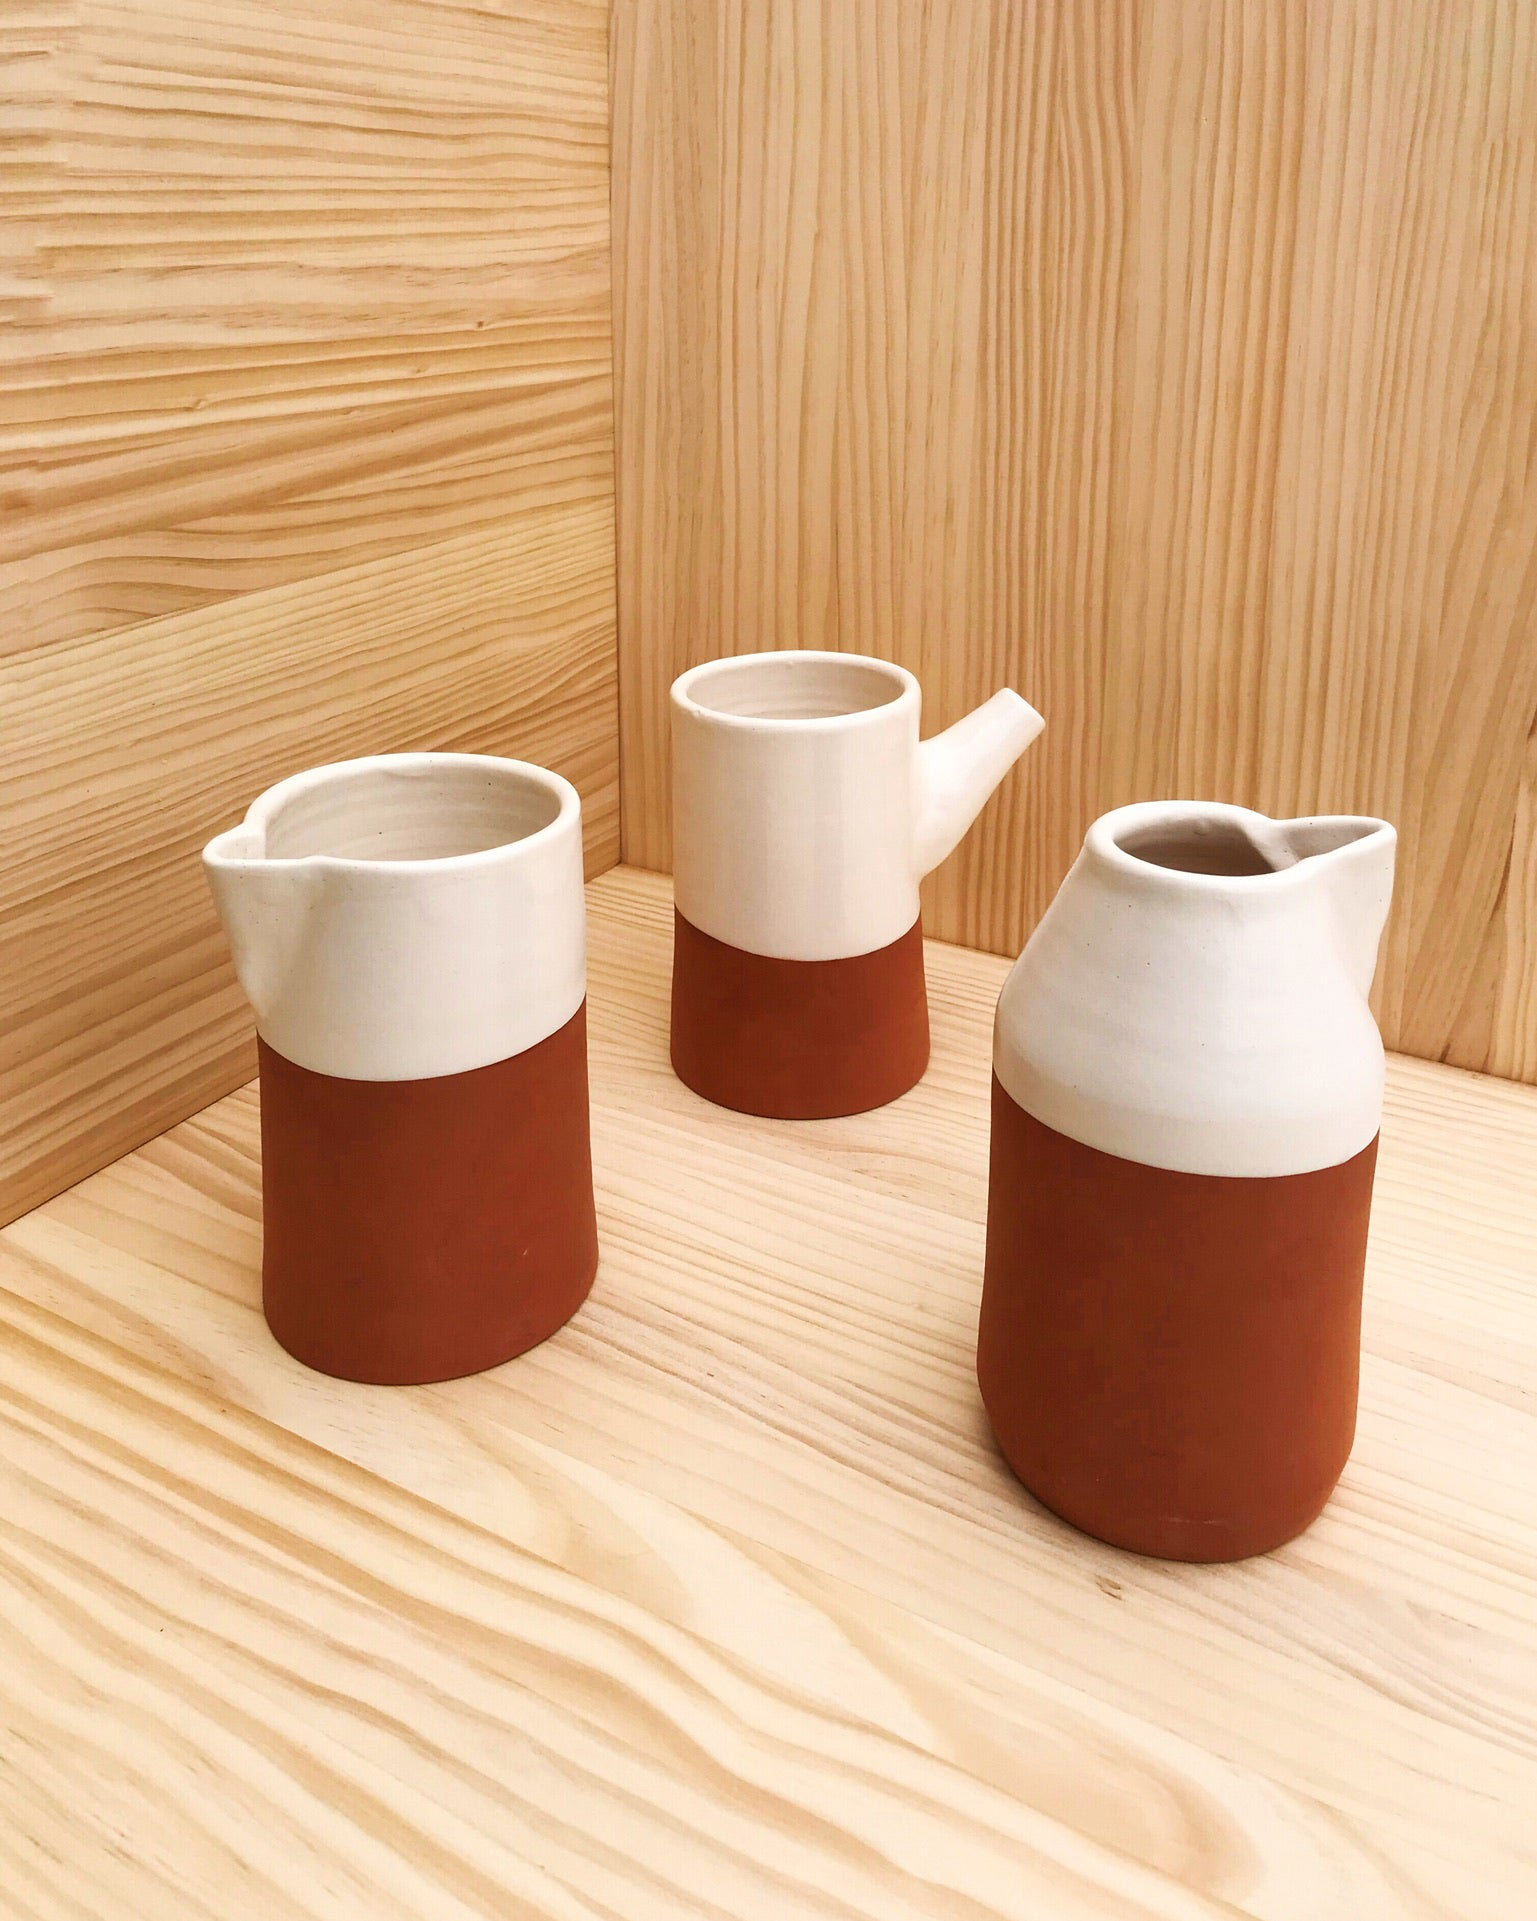 Handmade ceramic carafes terracota and white